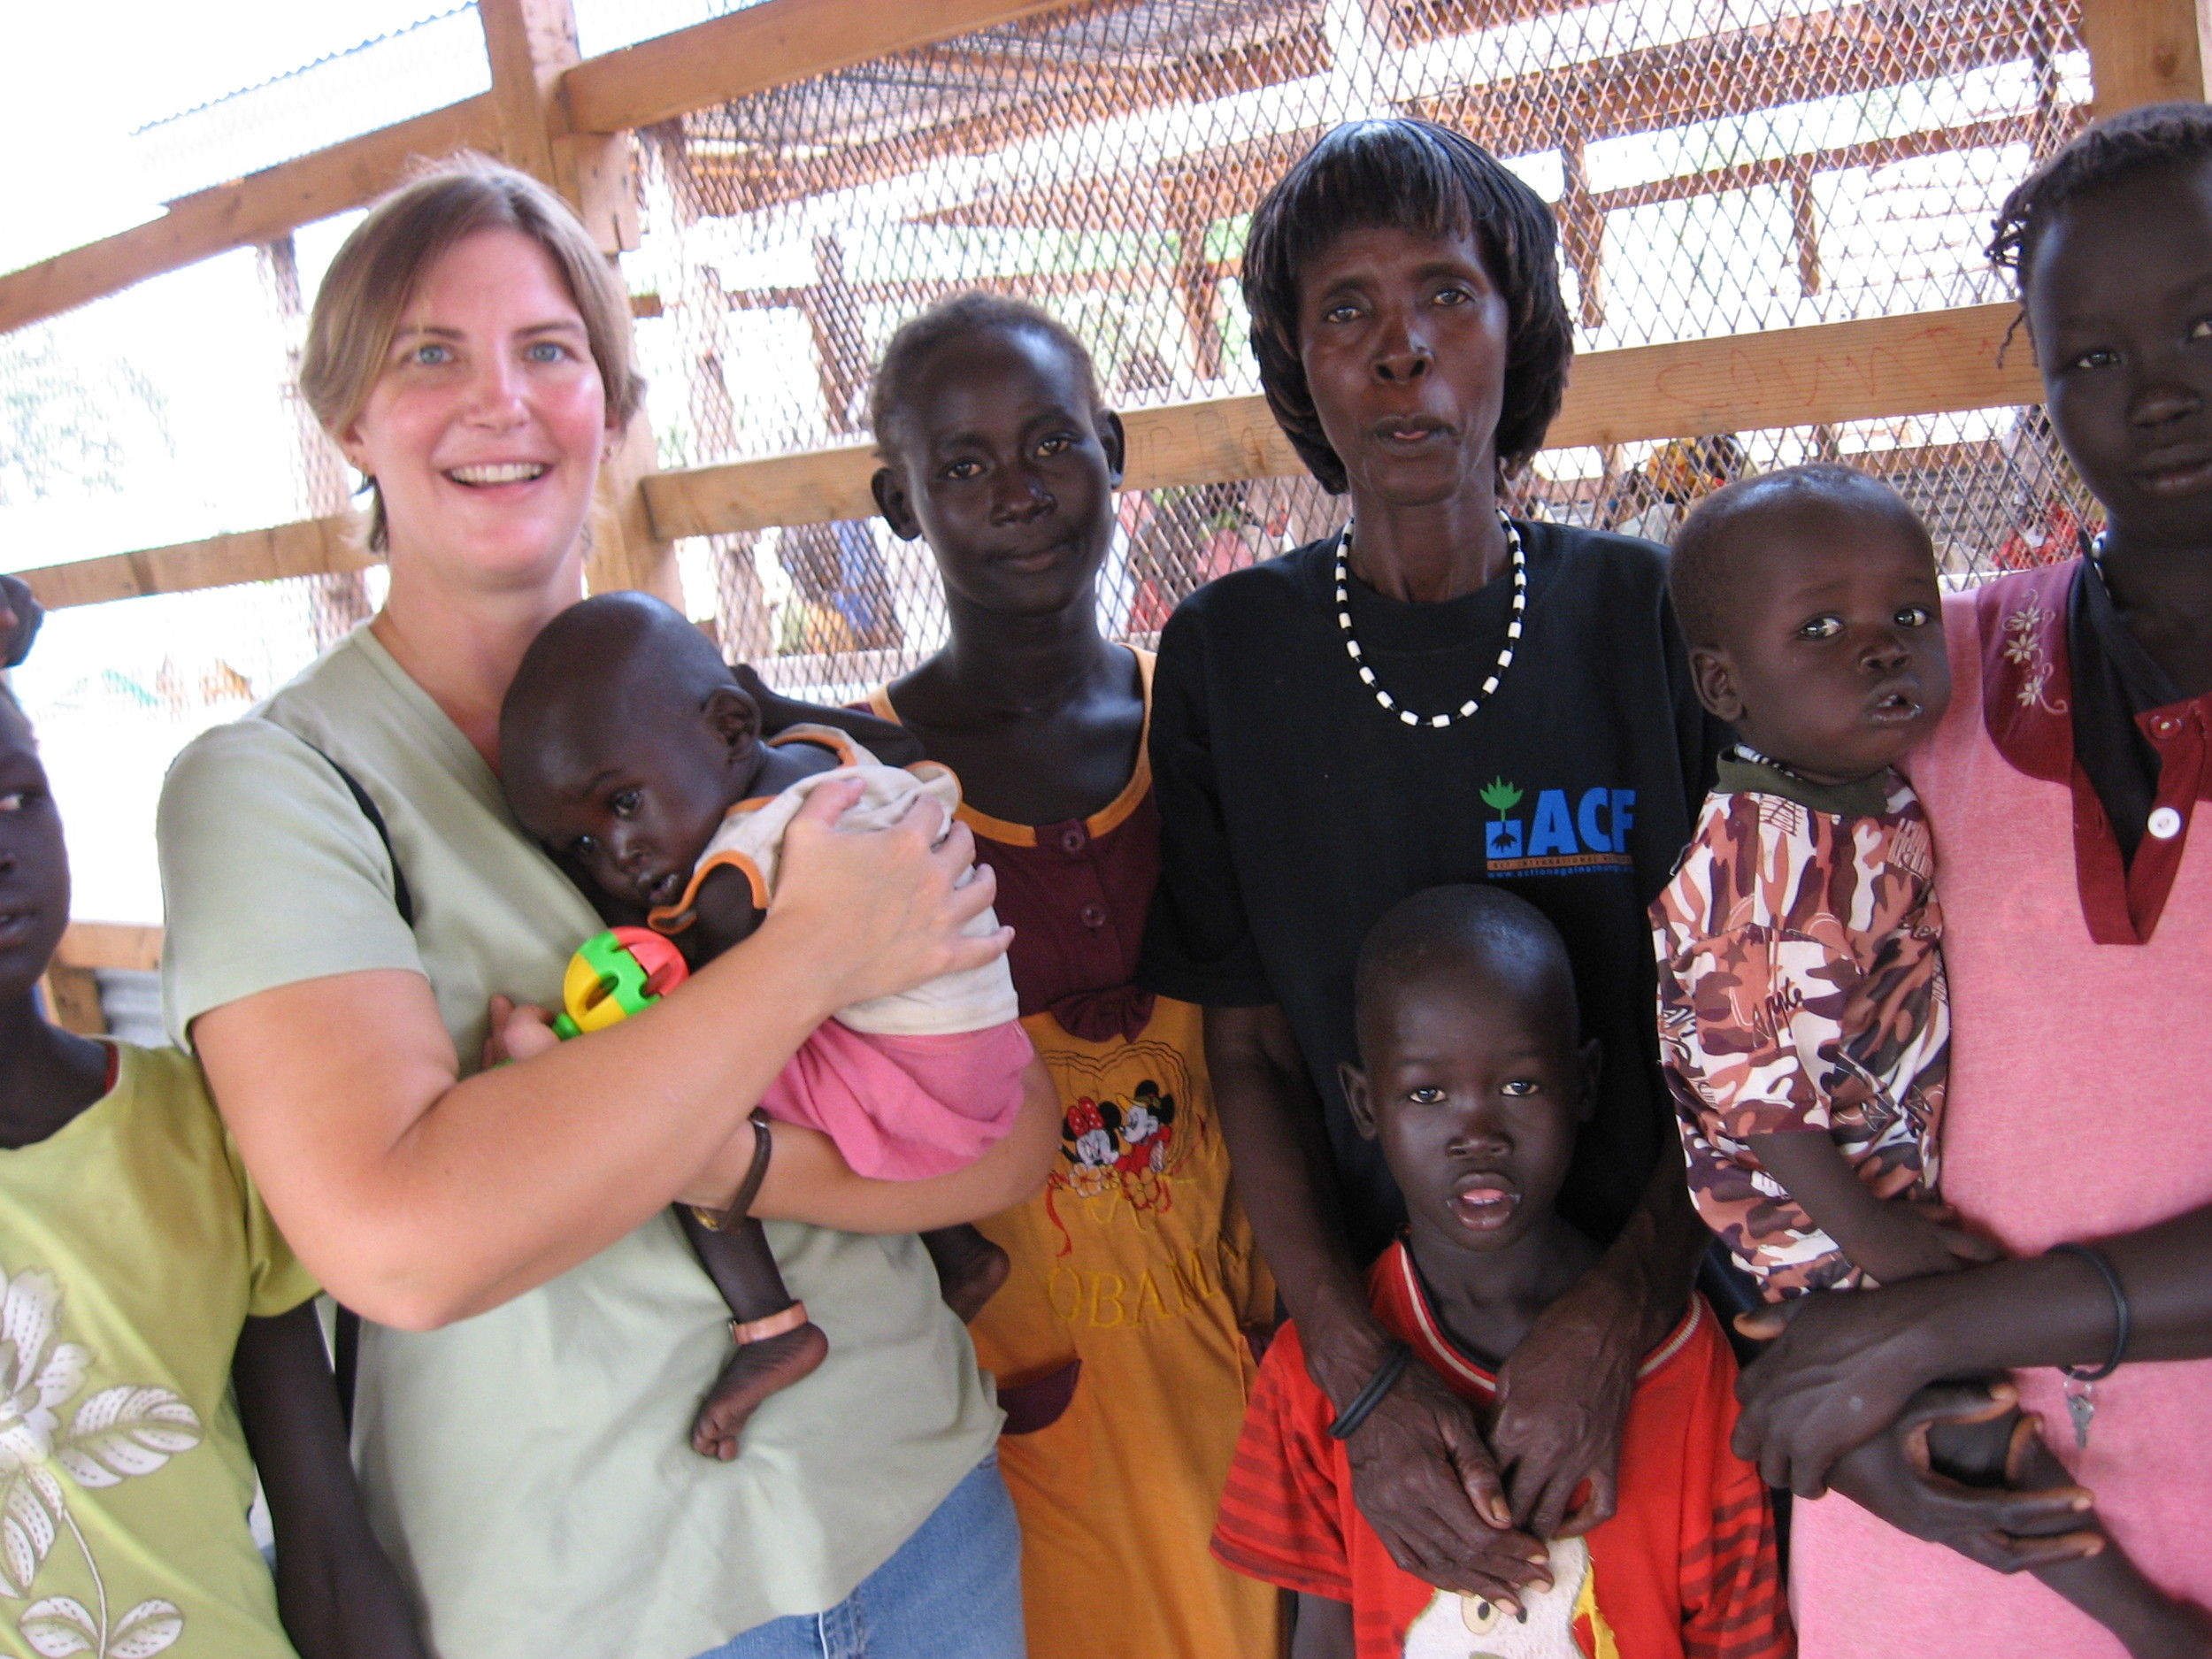 Sonya with several women and babies during a nutrition program in South Sudan.